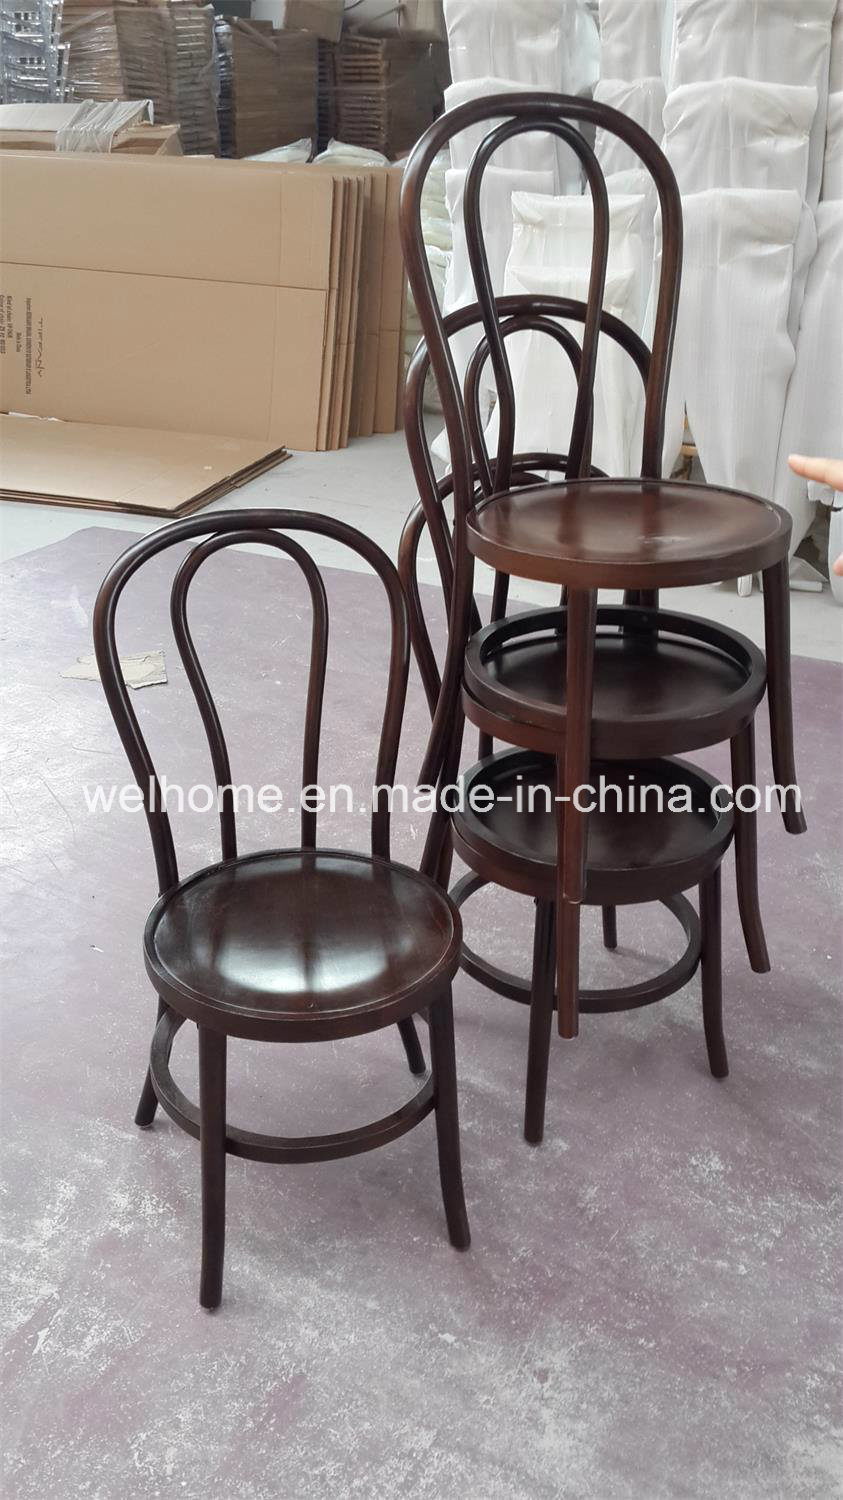 Hot Item Stackable Solid Wood Bentwood Chair For Hotel